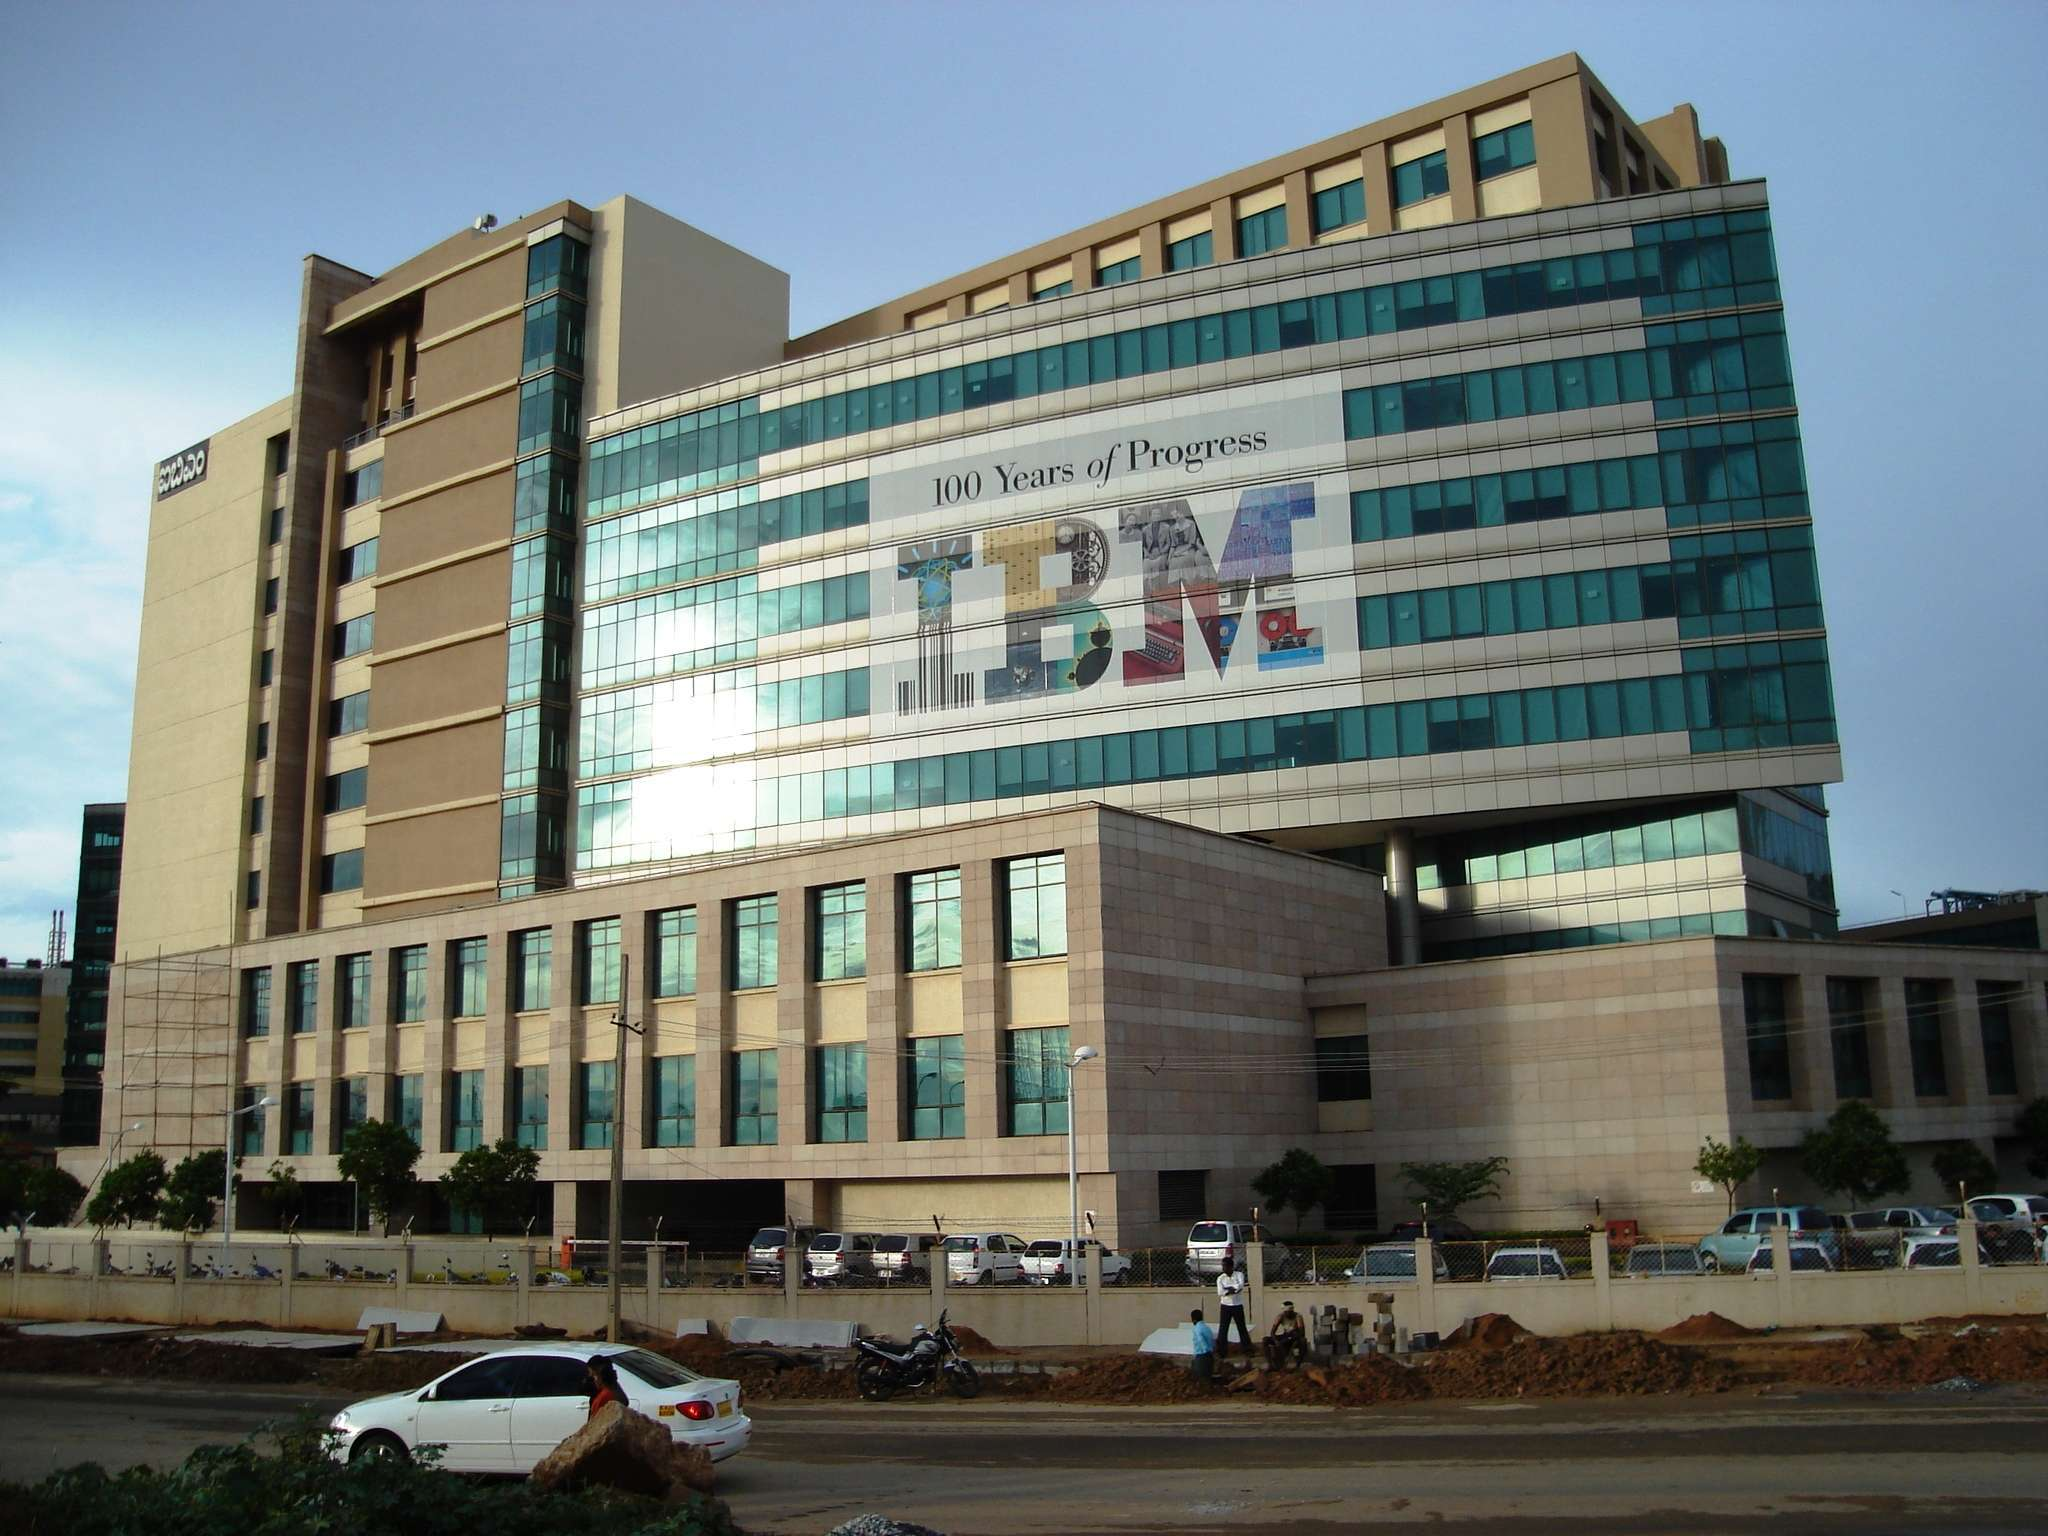 IBM India building in Bangalore, decorated as part of the centennial year celebrations. Vinoo202/Wikimedia Commons